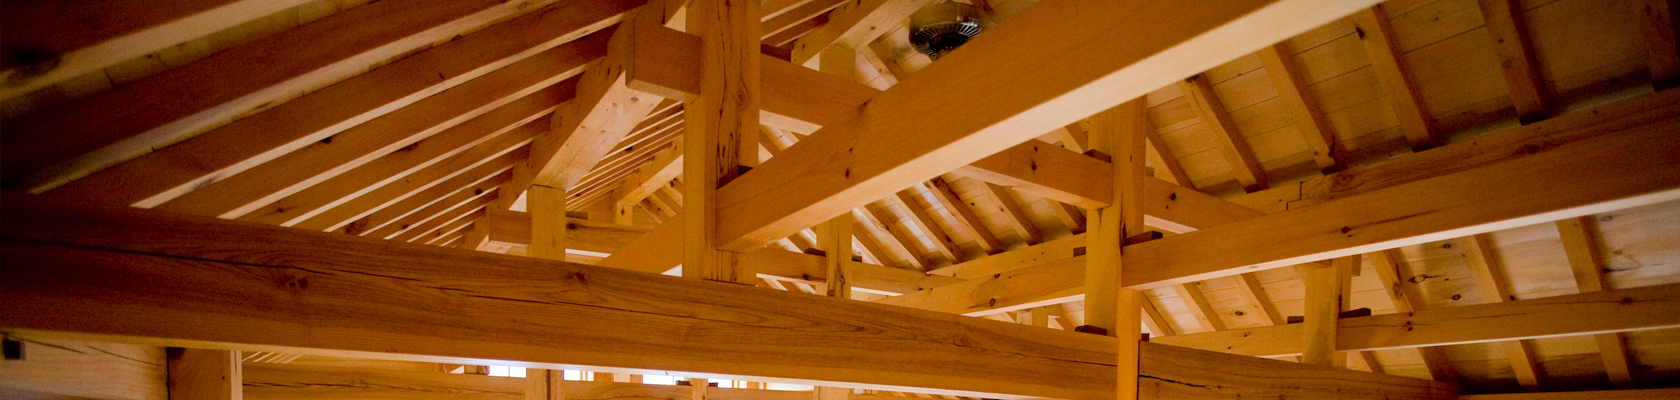 Services Construction Timber Framing – Kirby Nagelhout Construction